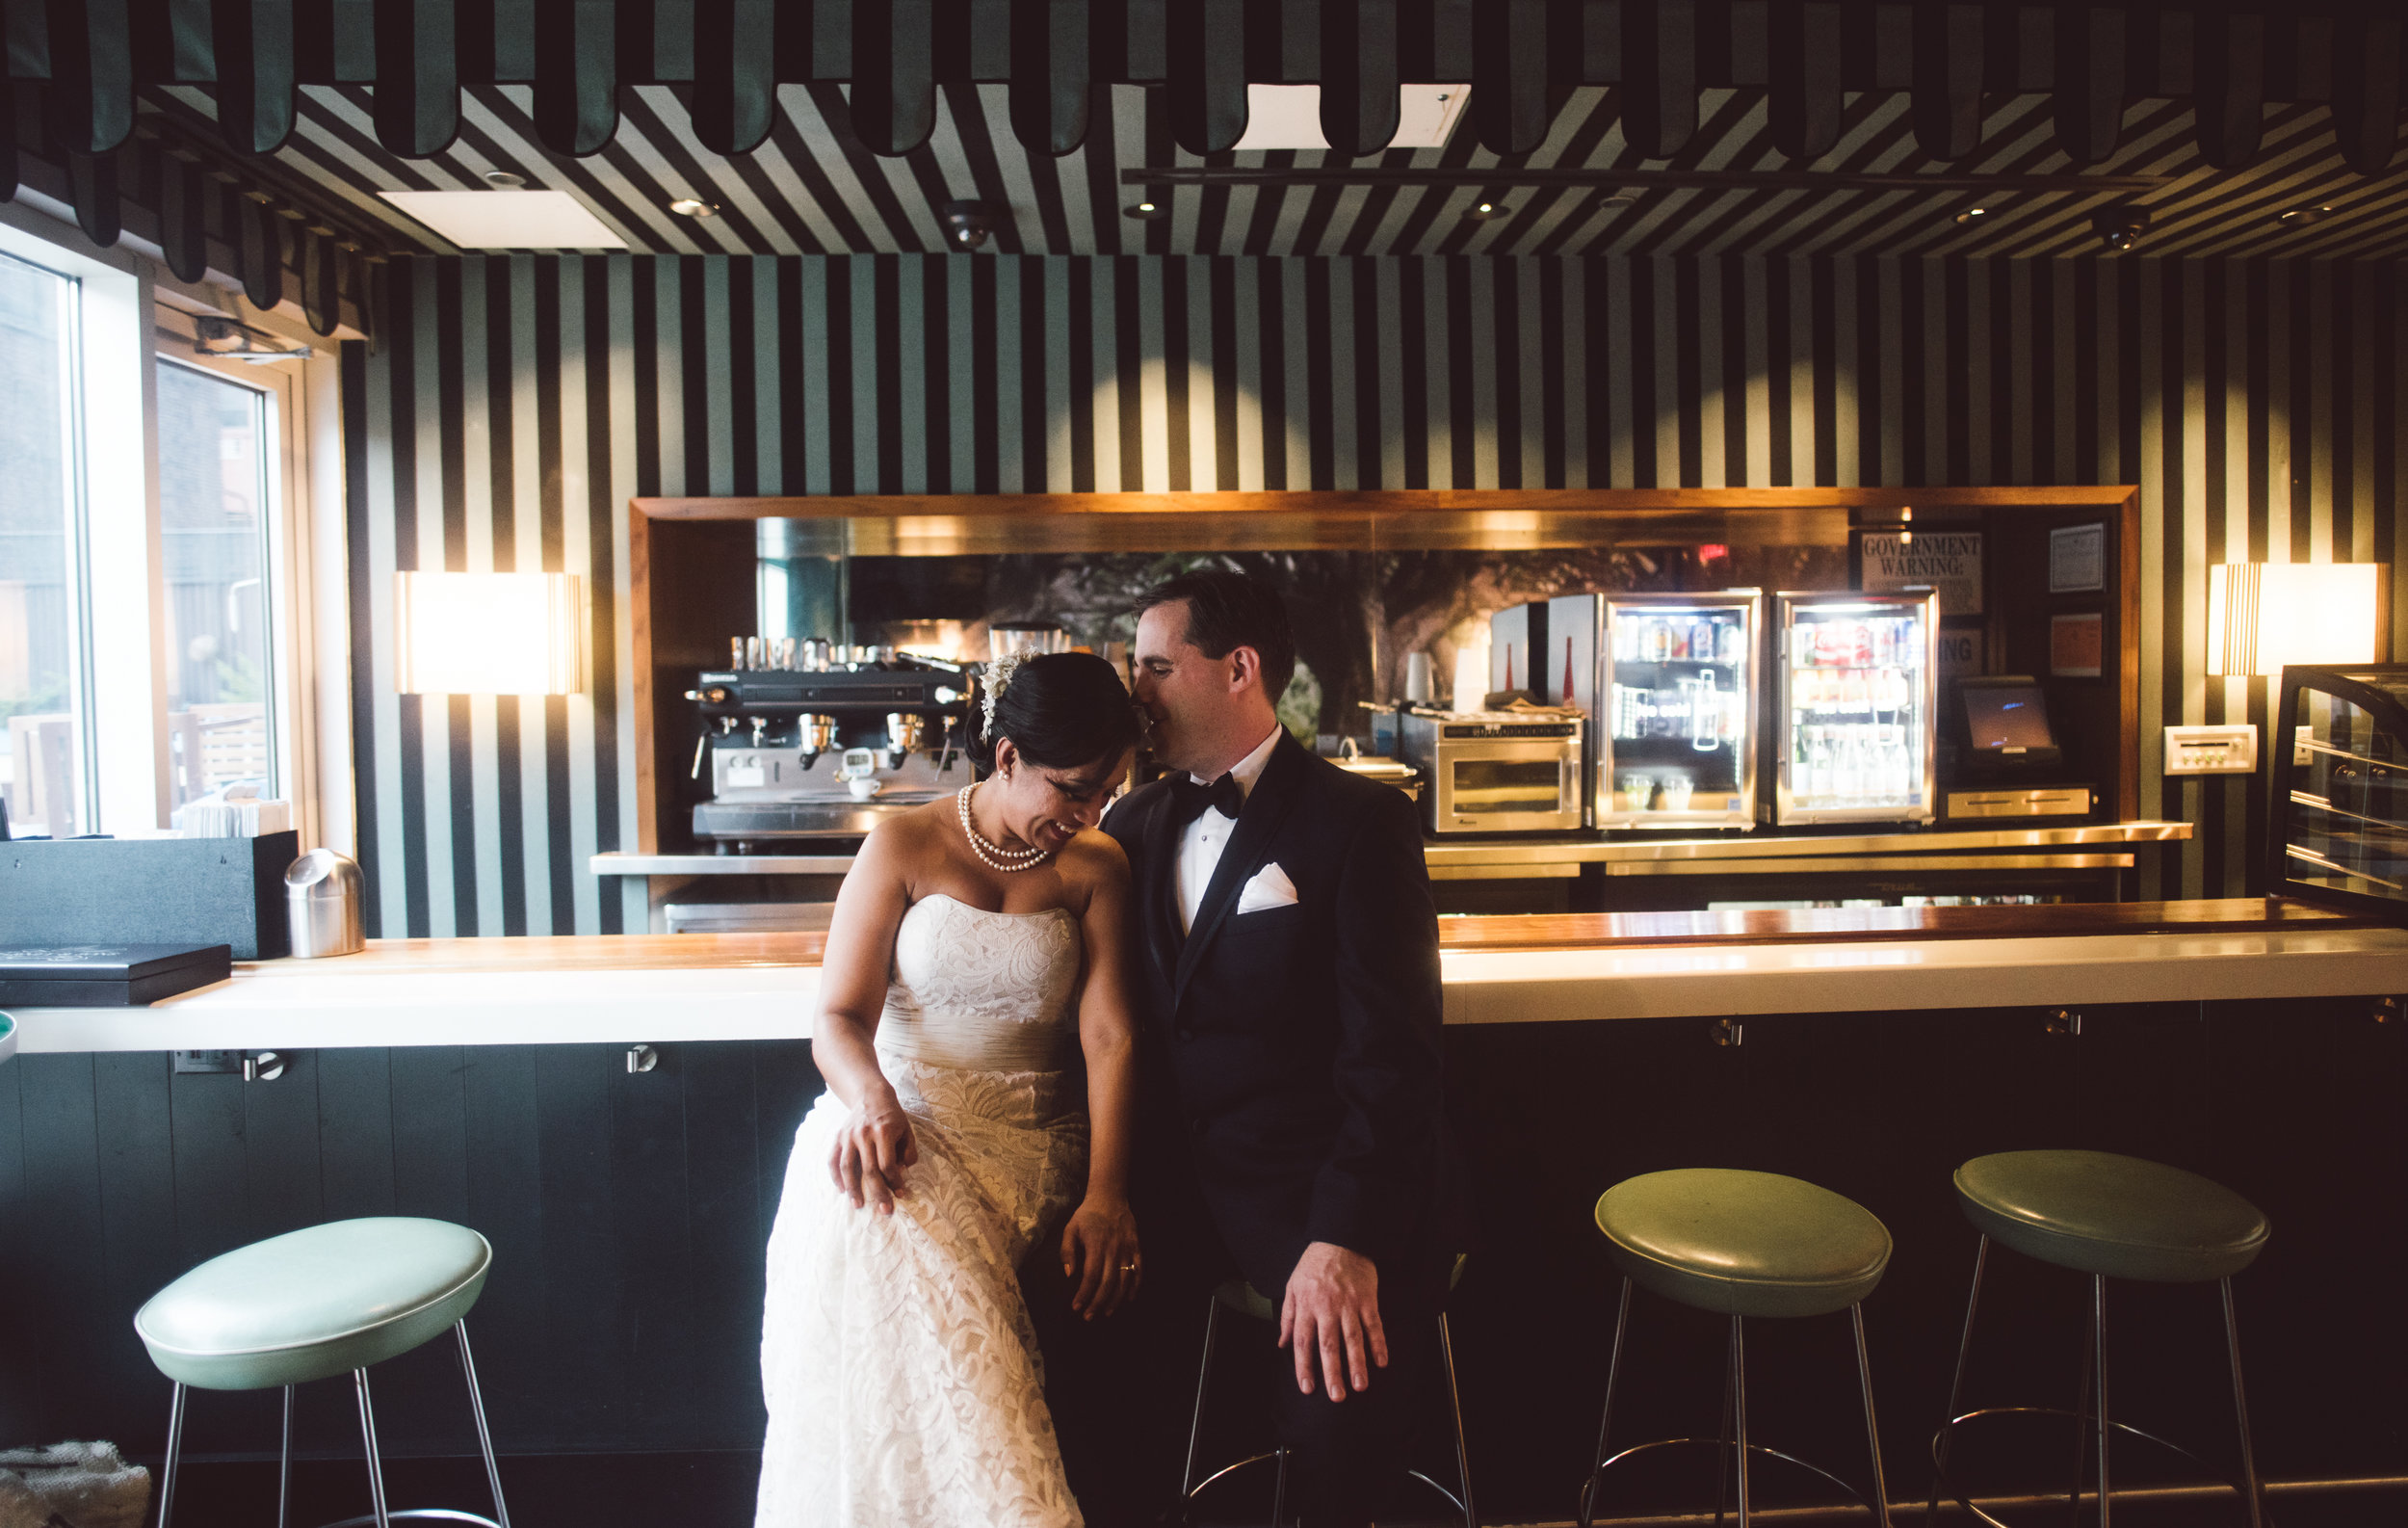 BROOKLYN WINERY WEDDING - TWOTWENTY by CHI-CHI AGBIM-39.jpg